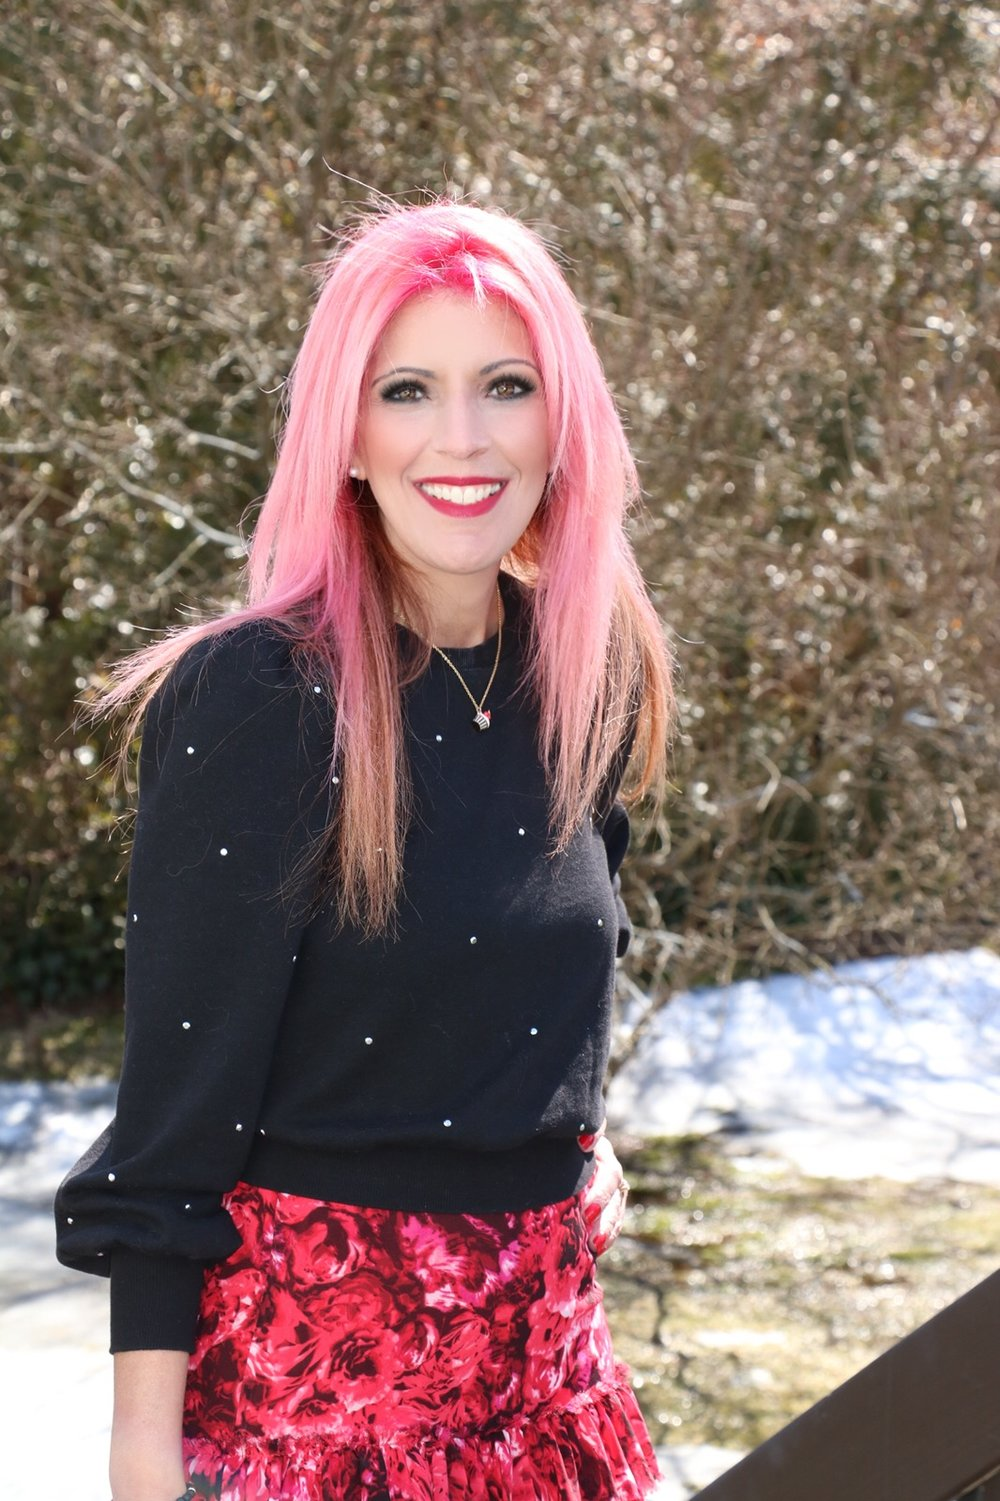 My hair was colored and styled by the amazing, talented, and creative Jannine Maynard of  Meraki   Salon , in Johnston, Rhode Island.